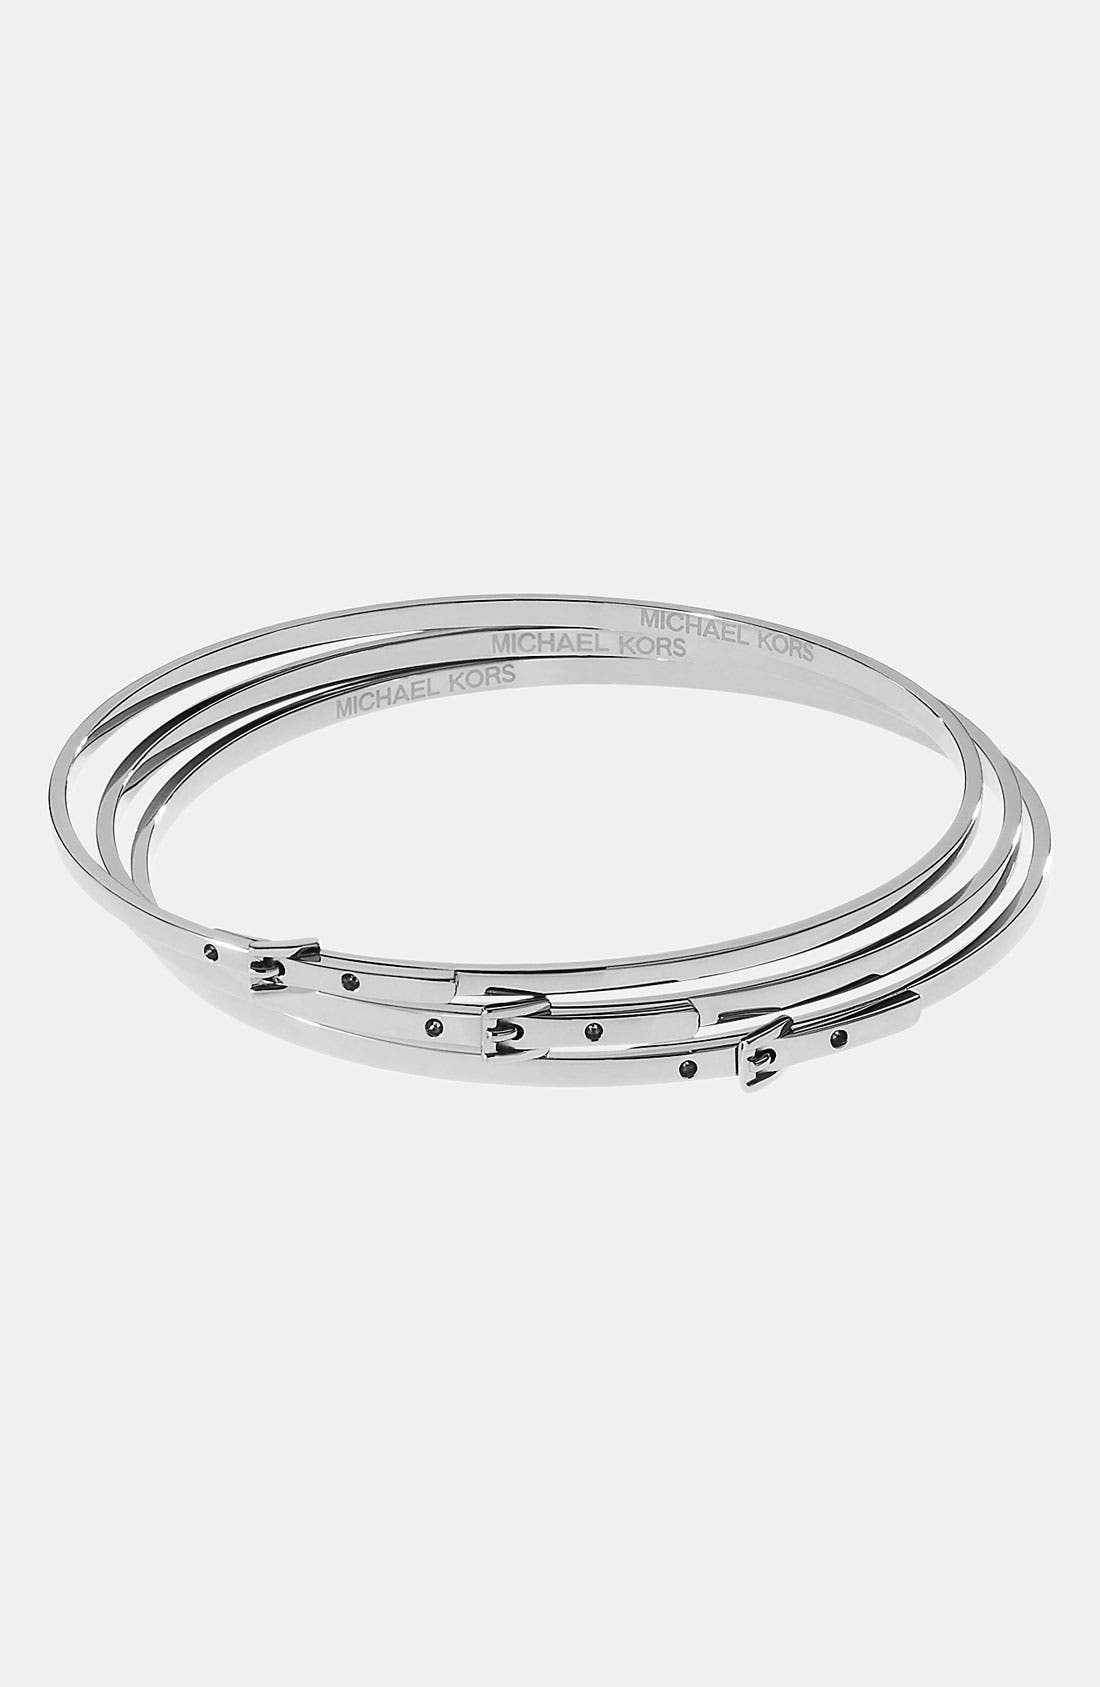 Alternate Image 1 Selected - Michael Kors Buckle Bangles (Set of 3)